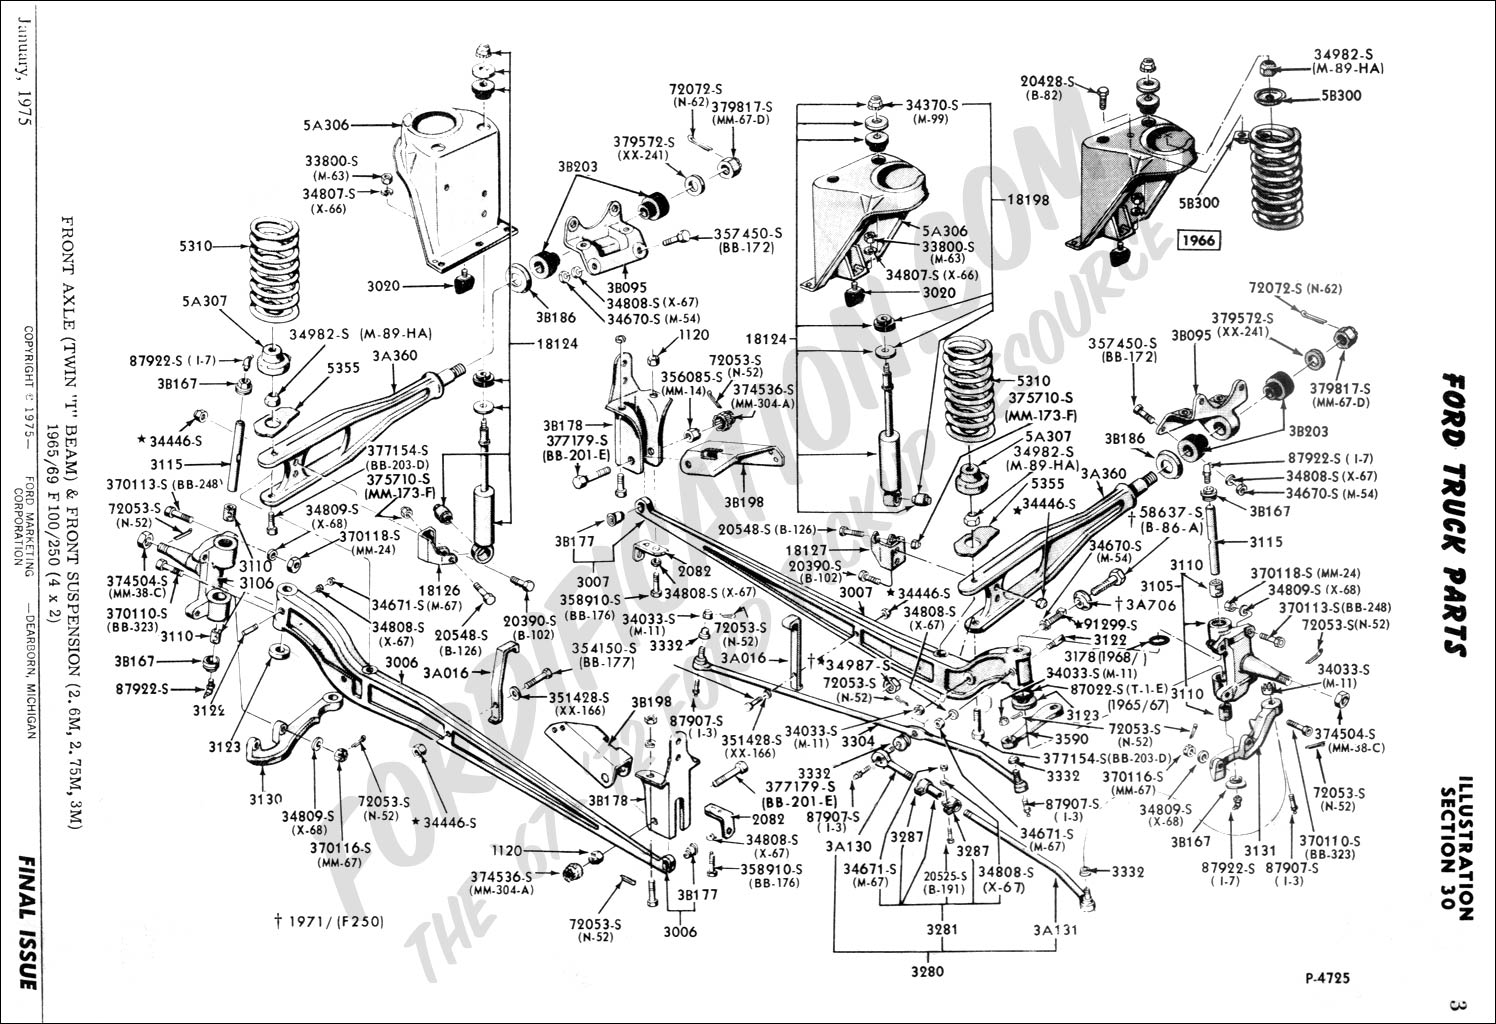 1061623 Bent I Beams On 70swb on 2006 Chrysler 300 Engine Diagram